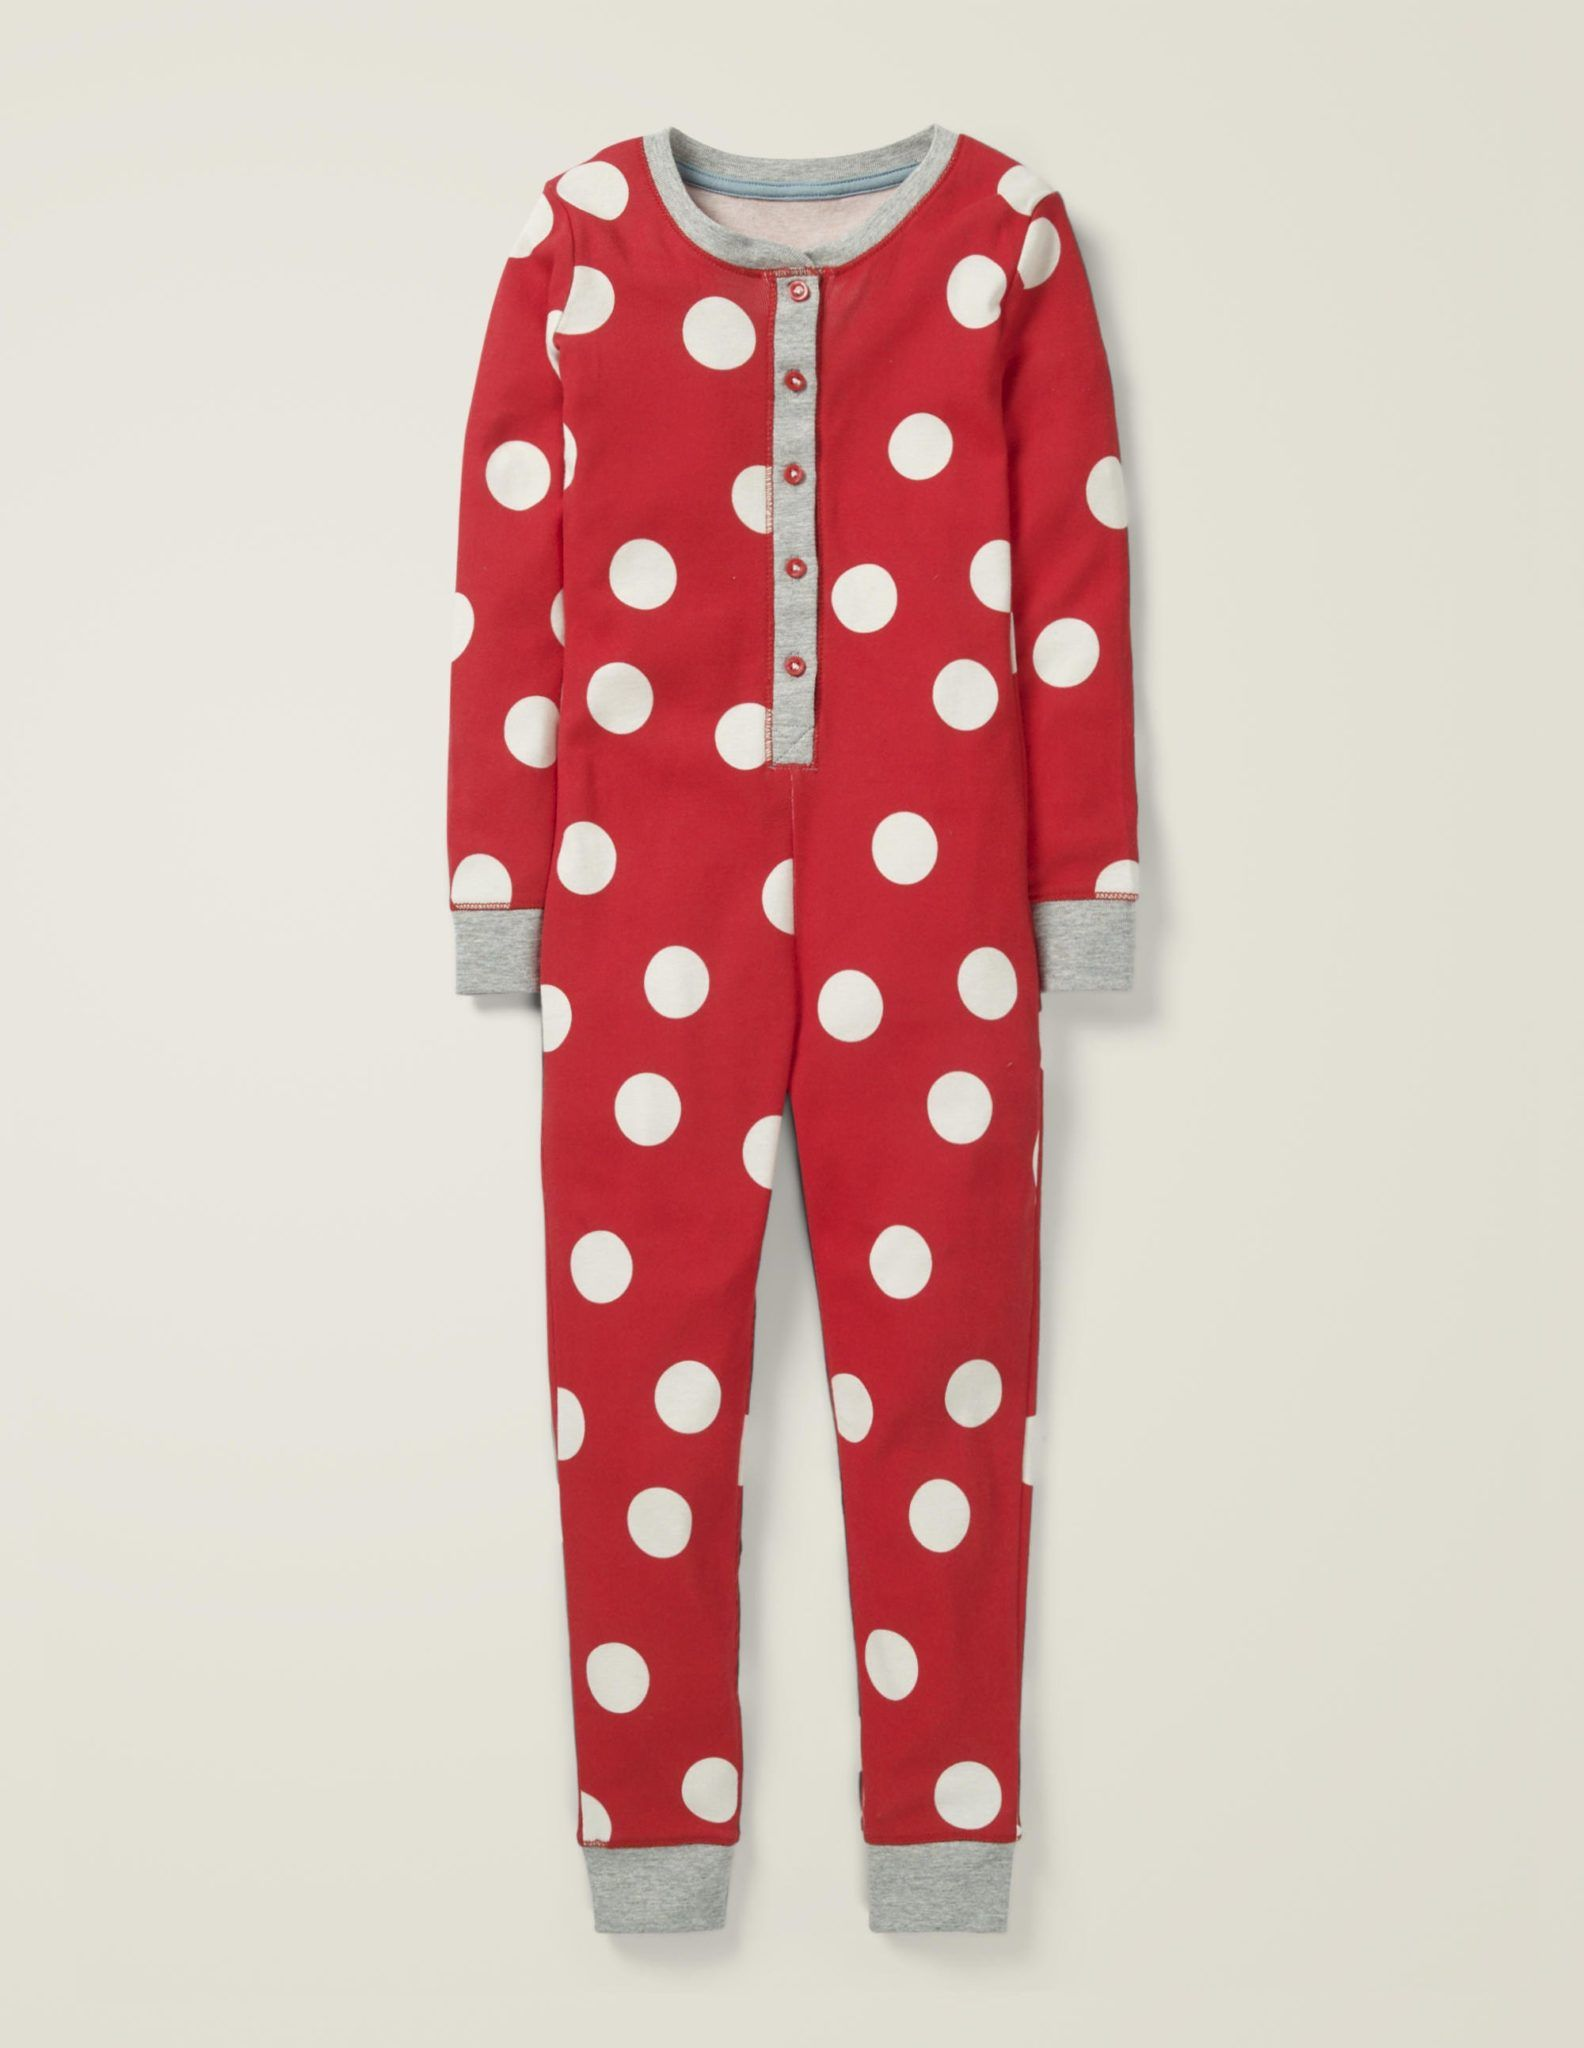 Holiday Pajamas for the Whole Family Katie Considers in